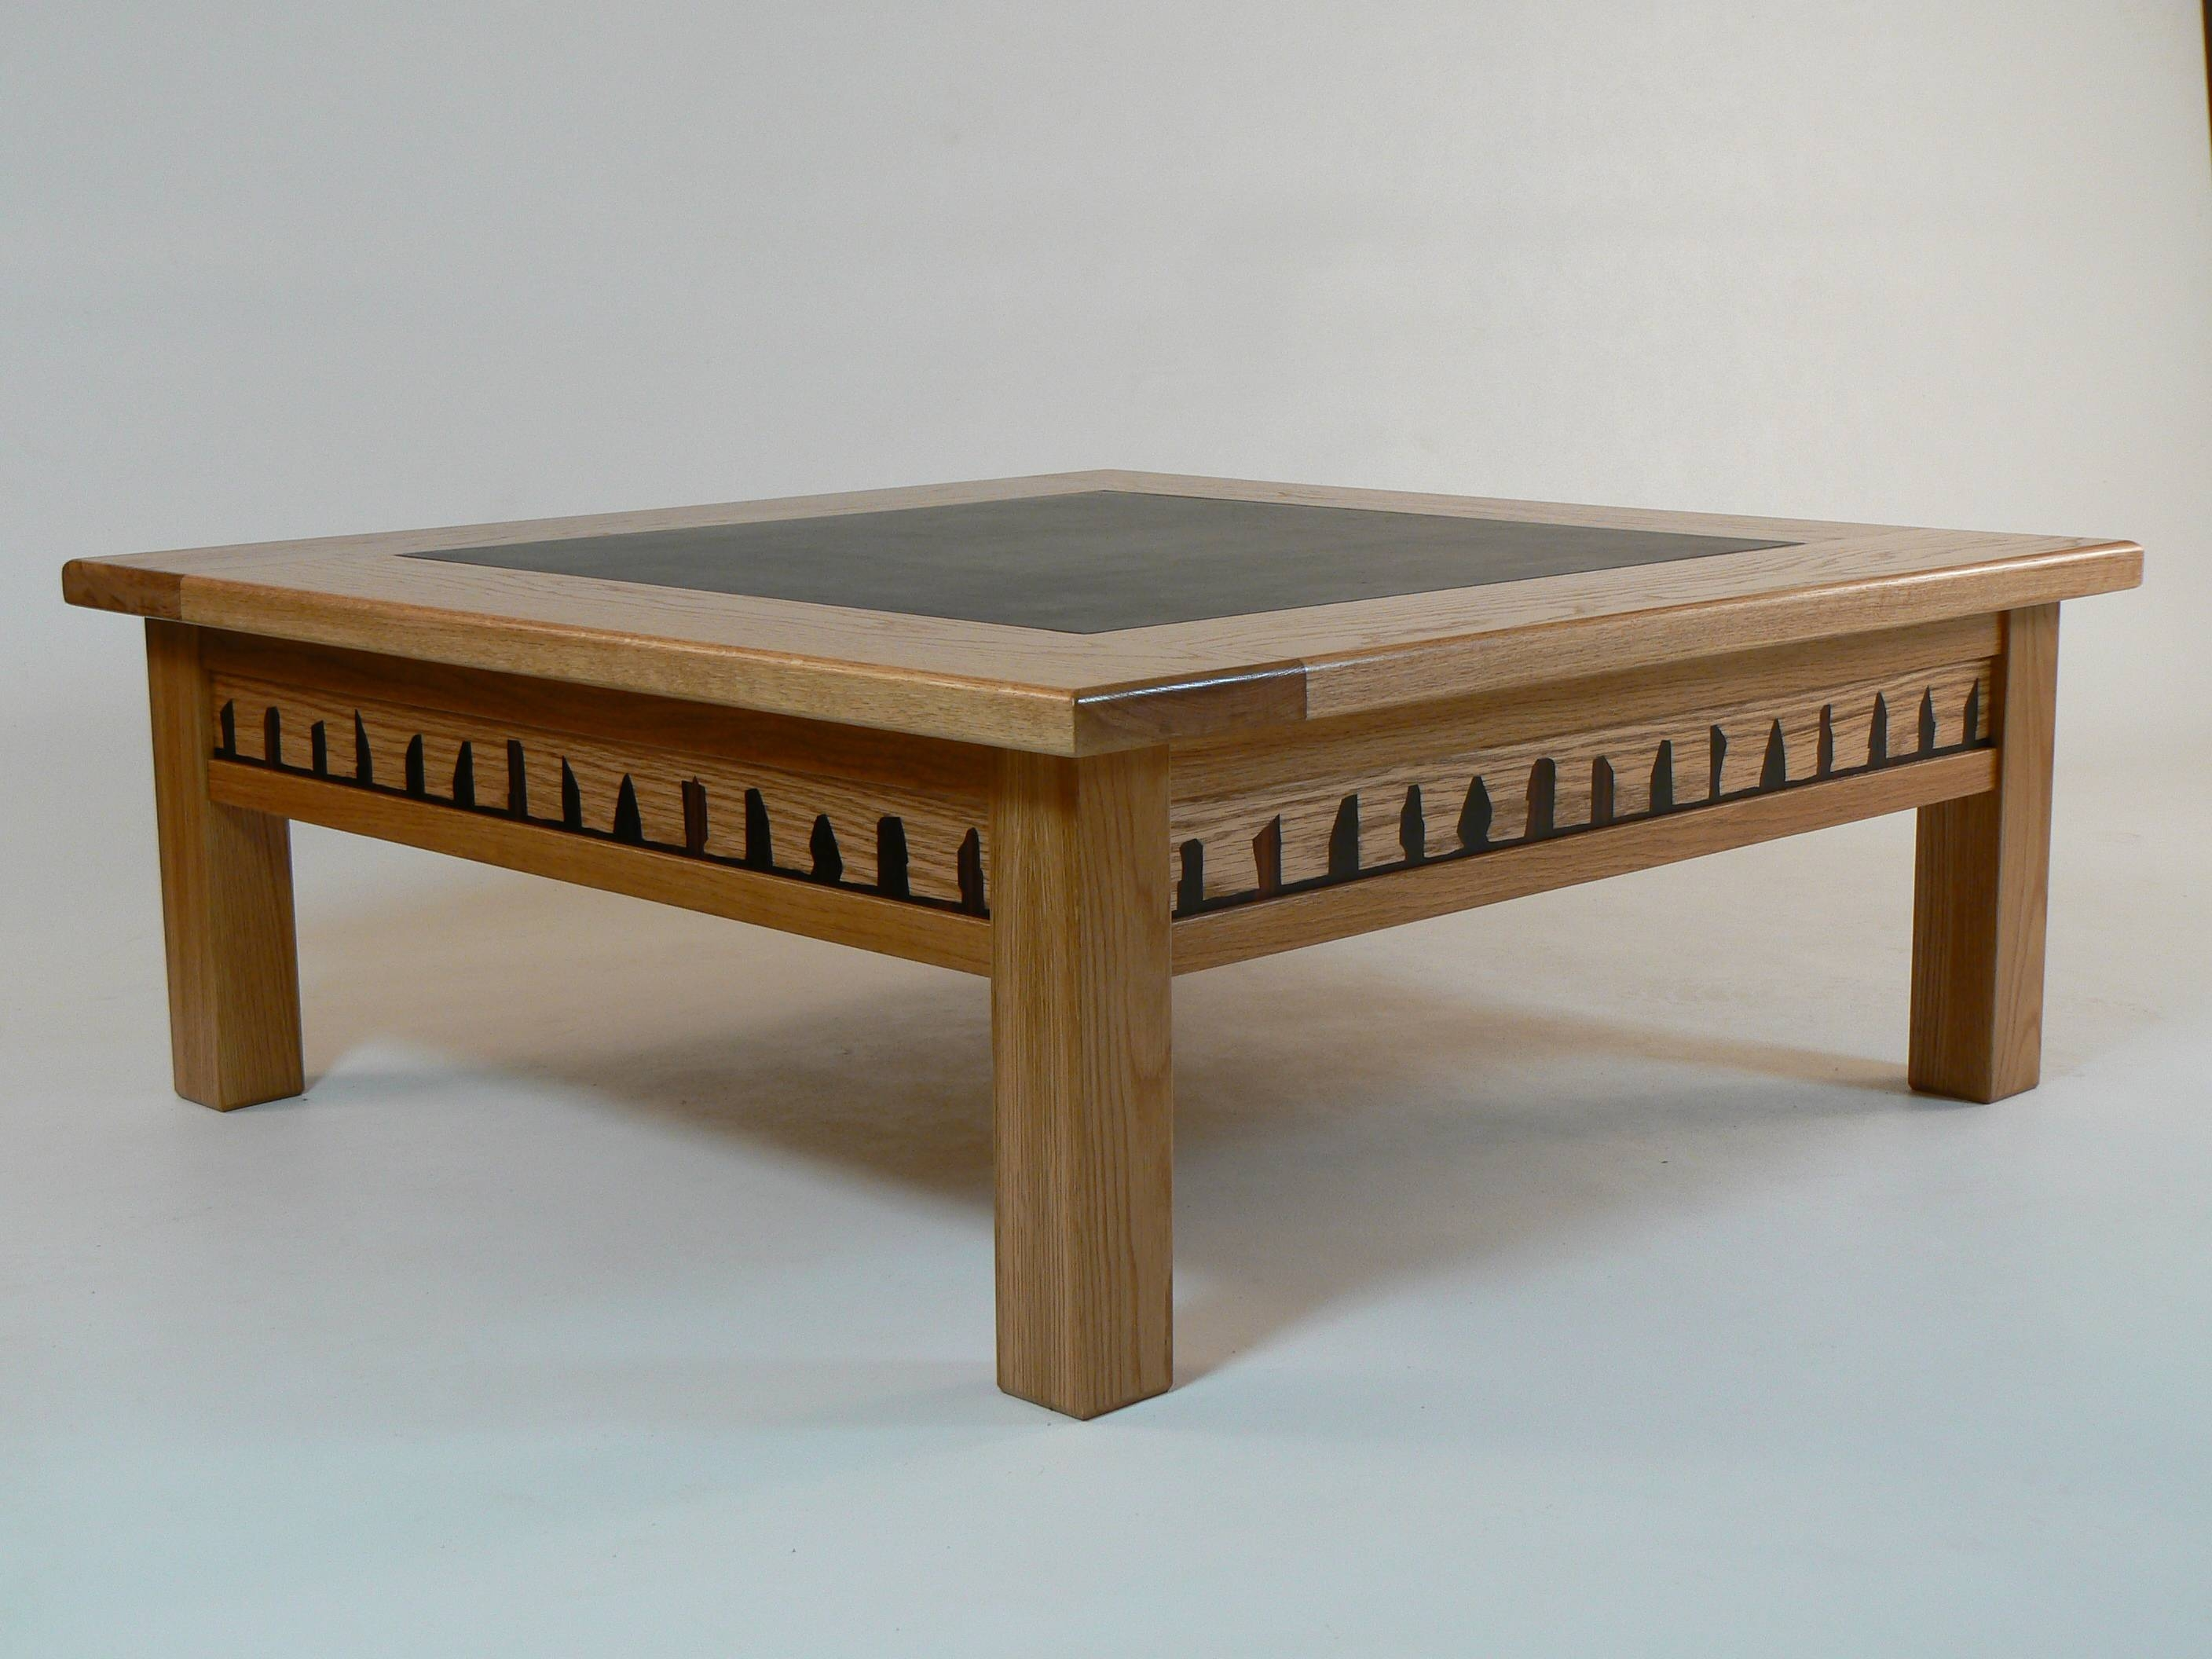 Square Oak Coffee Table With Glass Top | Coffee Tables Decoration pertaining to Reclaimed Wood And Glass Coffee Tables (Image 27 of 30)